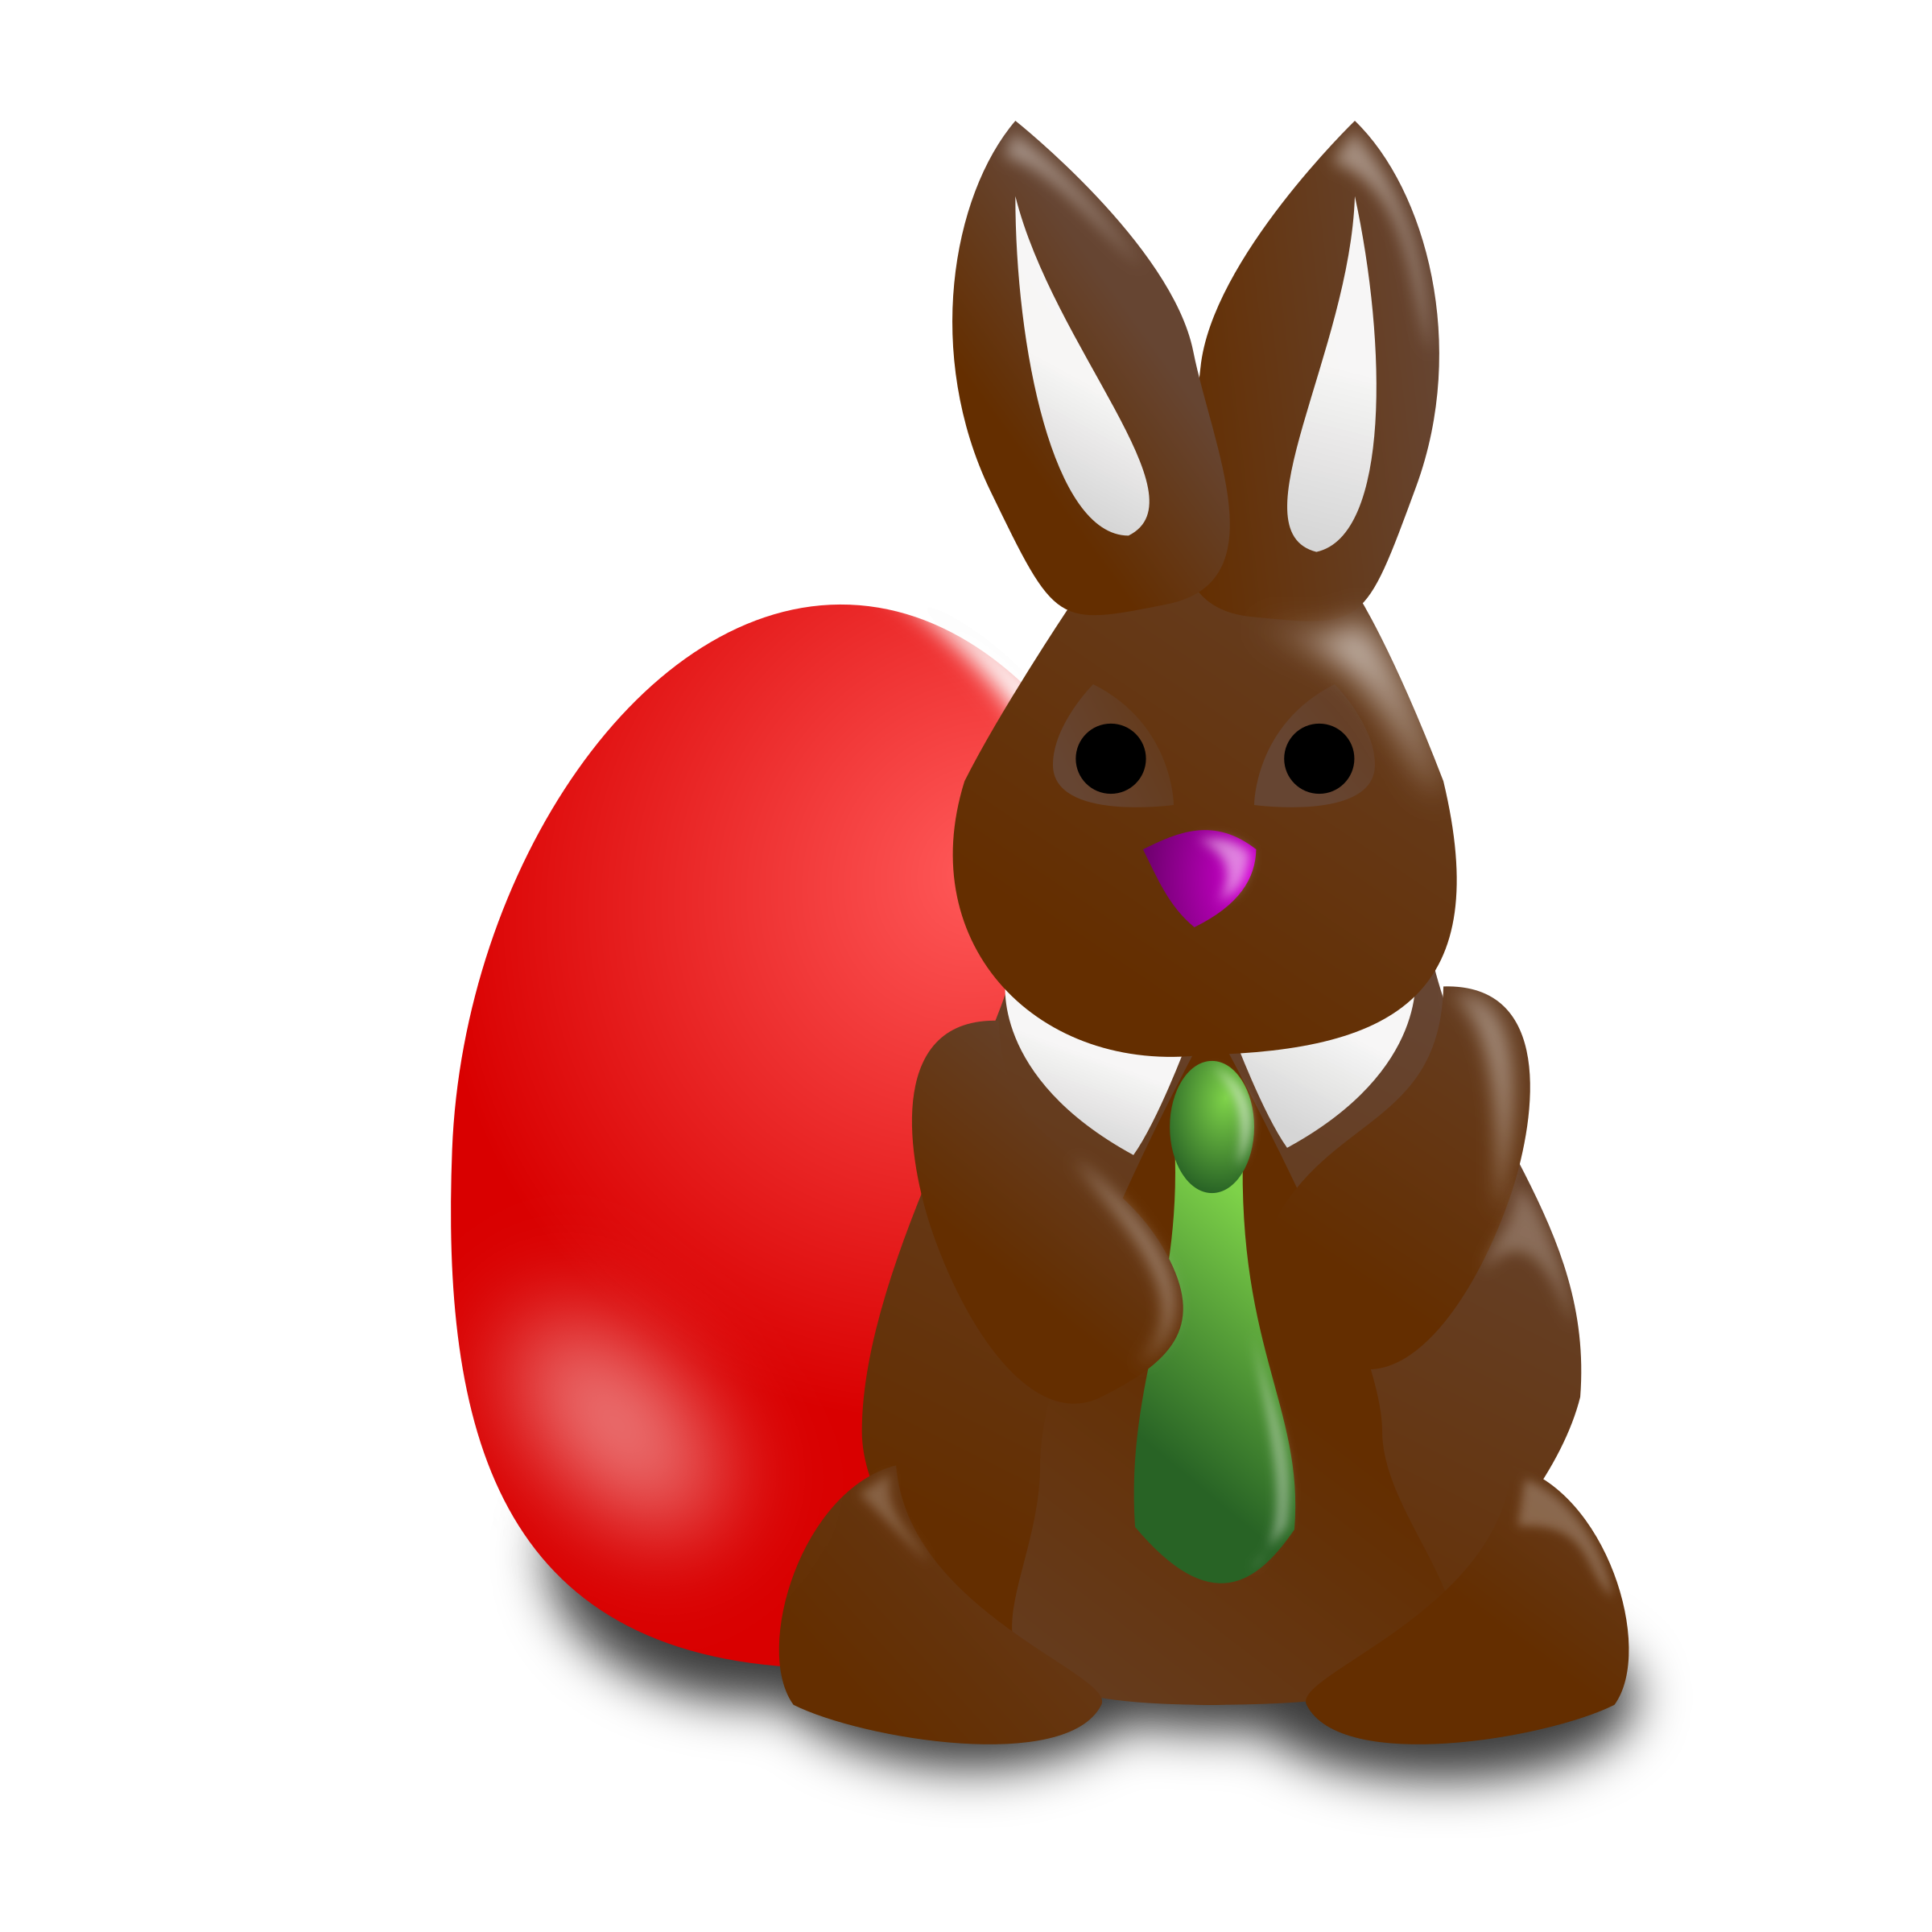 transparent library Commons clipart. File easter icon flip.